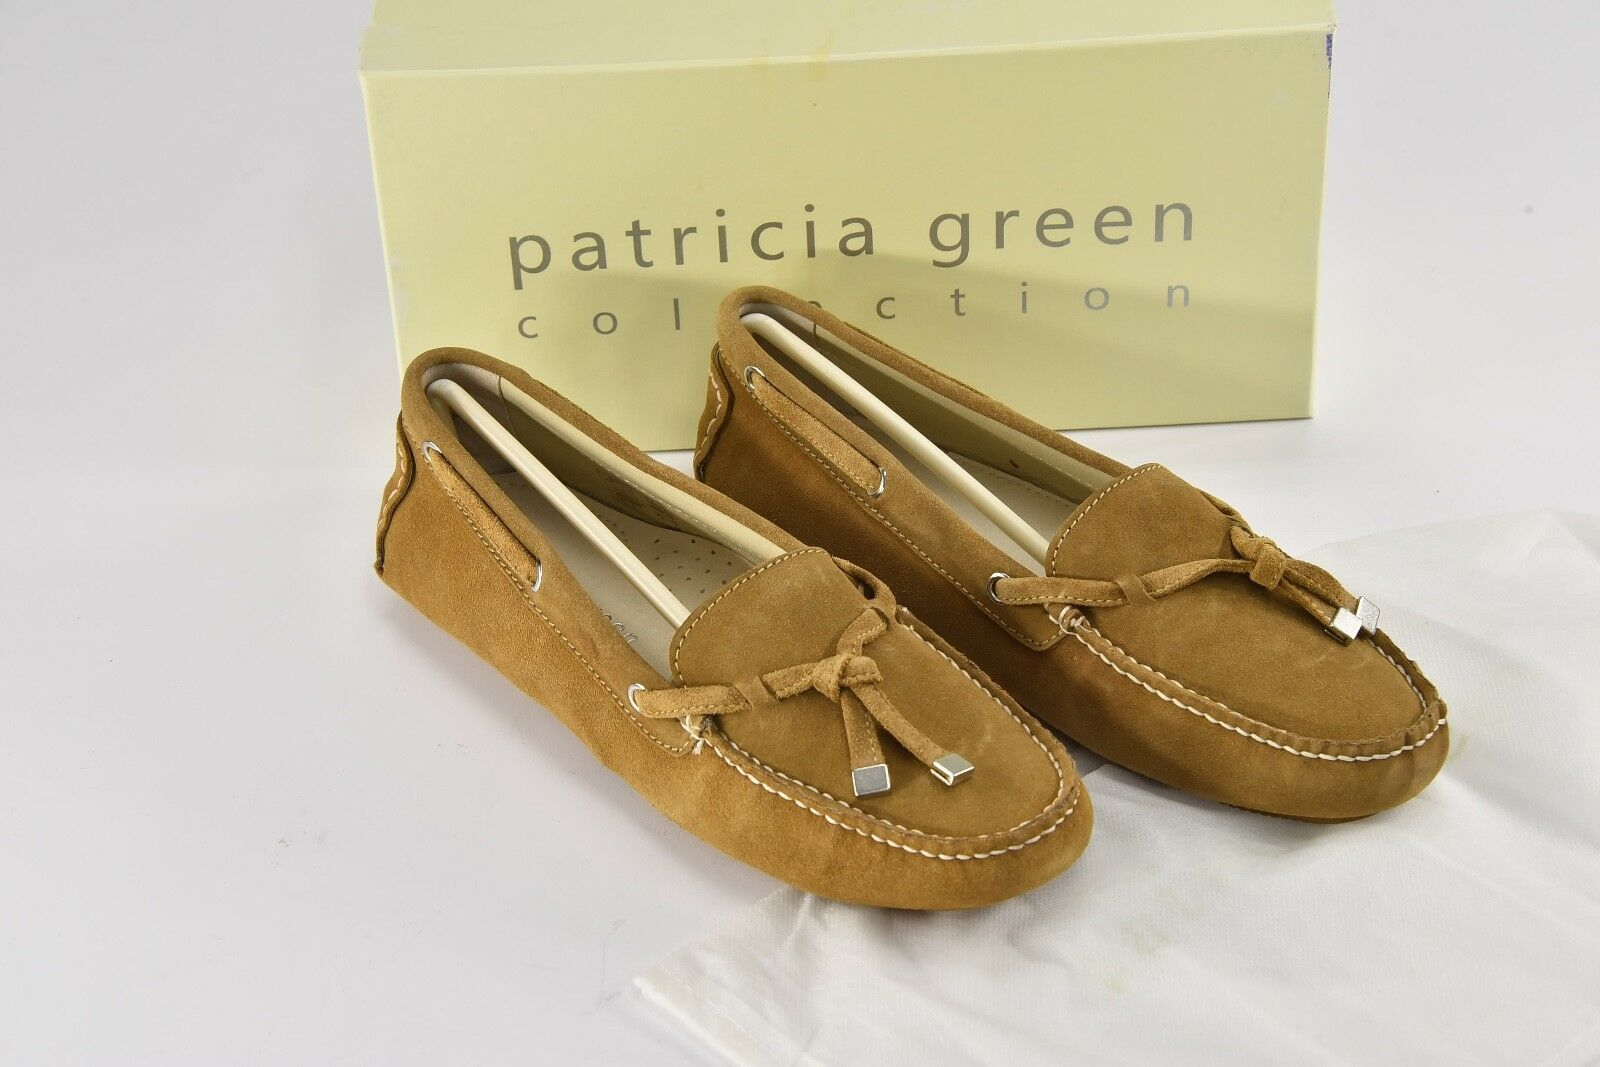 PATRICIA PATRICIA PATRICIA GREEN Lizzie Camel Suede Moccasins Loafers Flats Slippers 11 M66 65fa4c